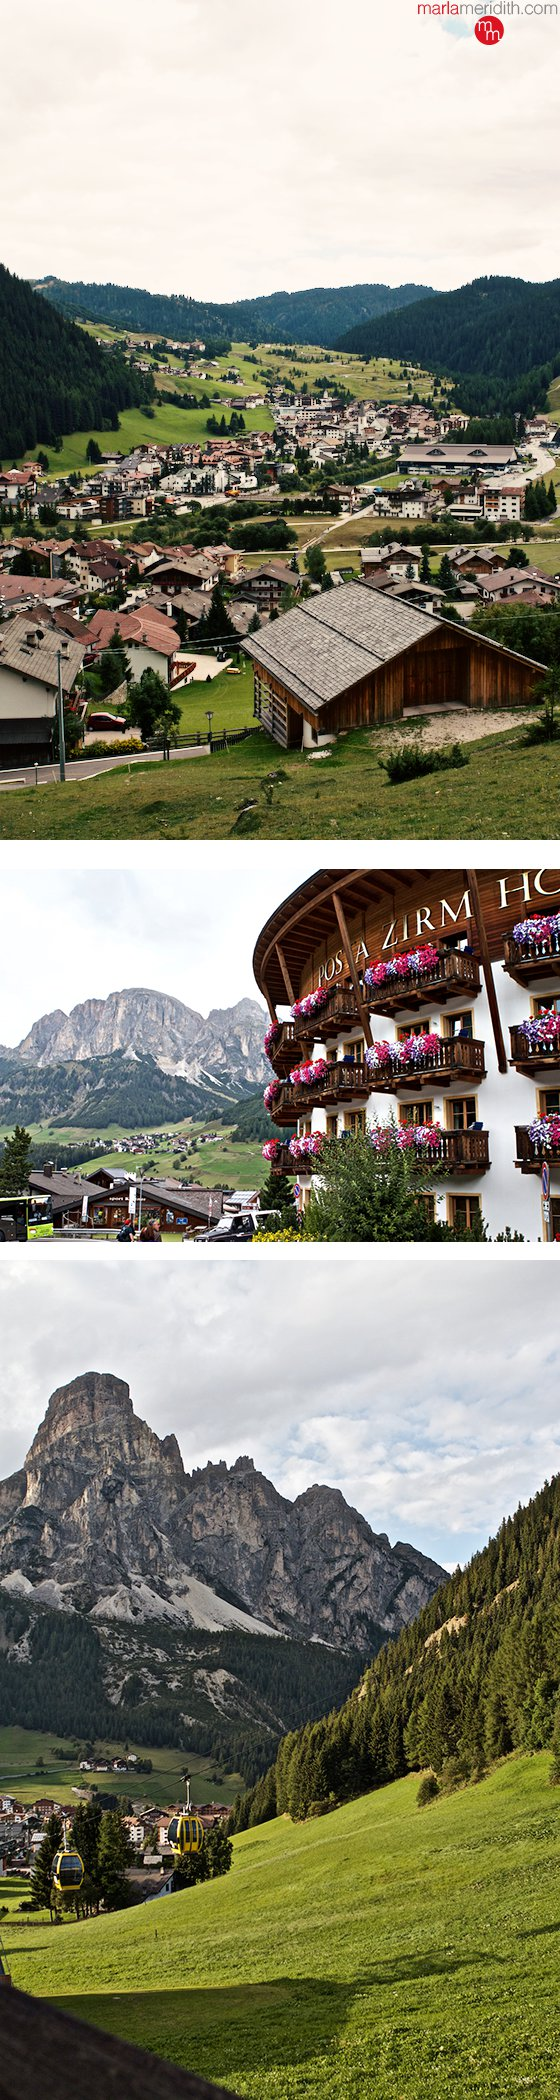 My favorite village in the #Dolomites Corvara! MarlaMeridith.com ( @marlameridith ) #italy #travel